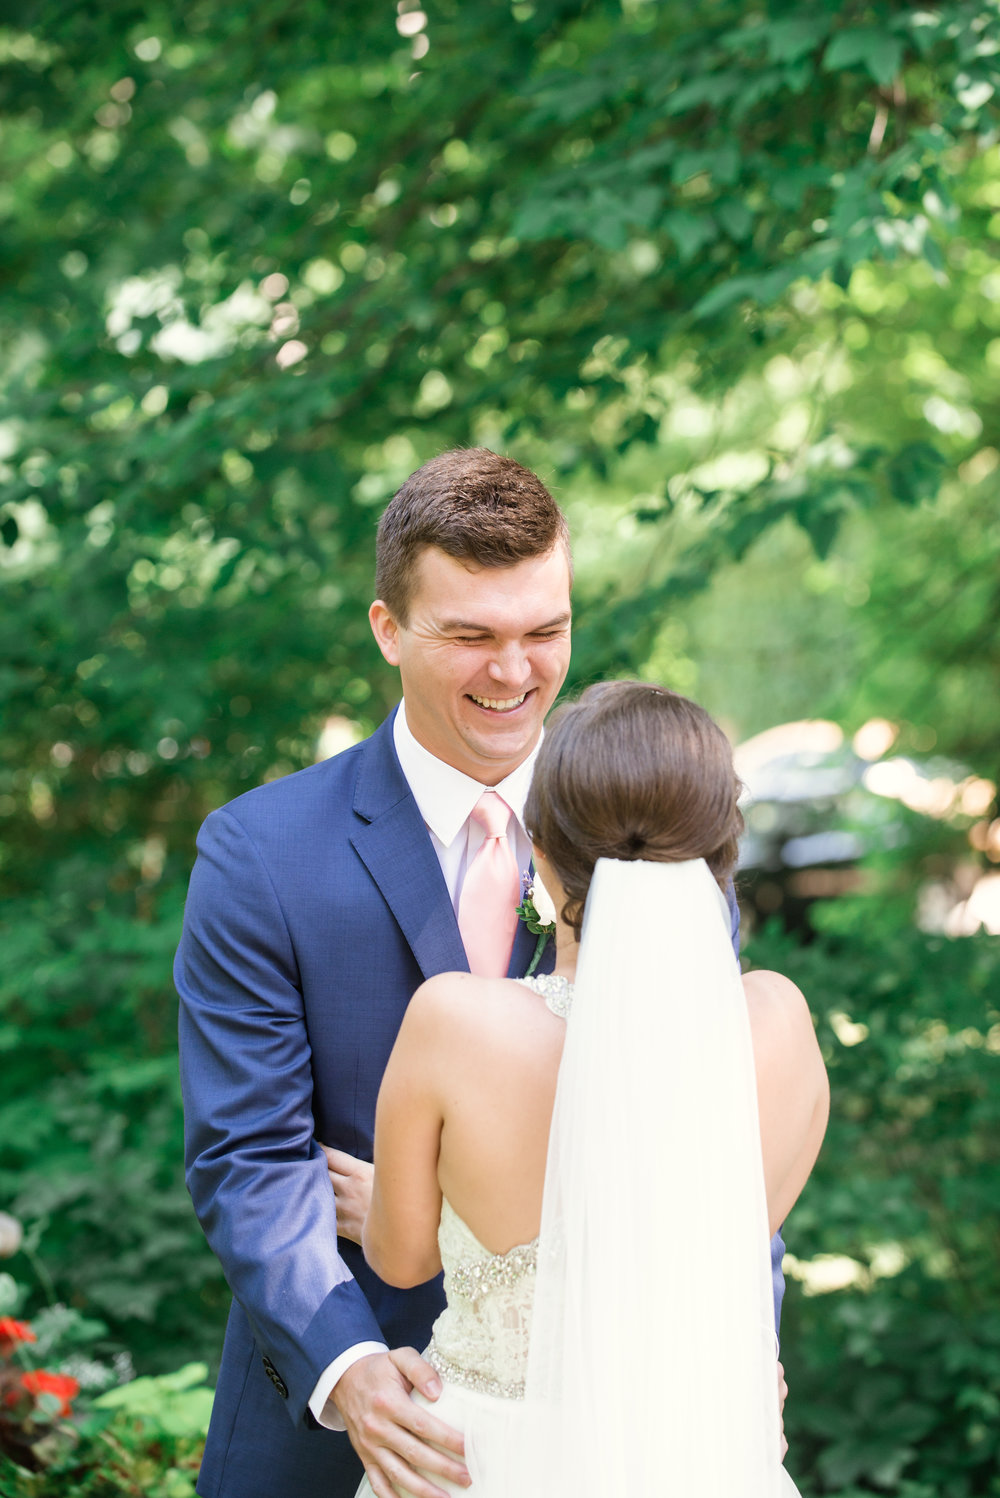 Gillian&CaseyWedding-82.JPG